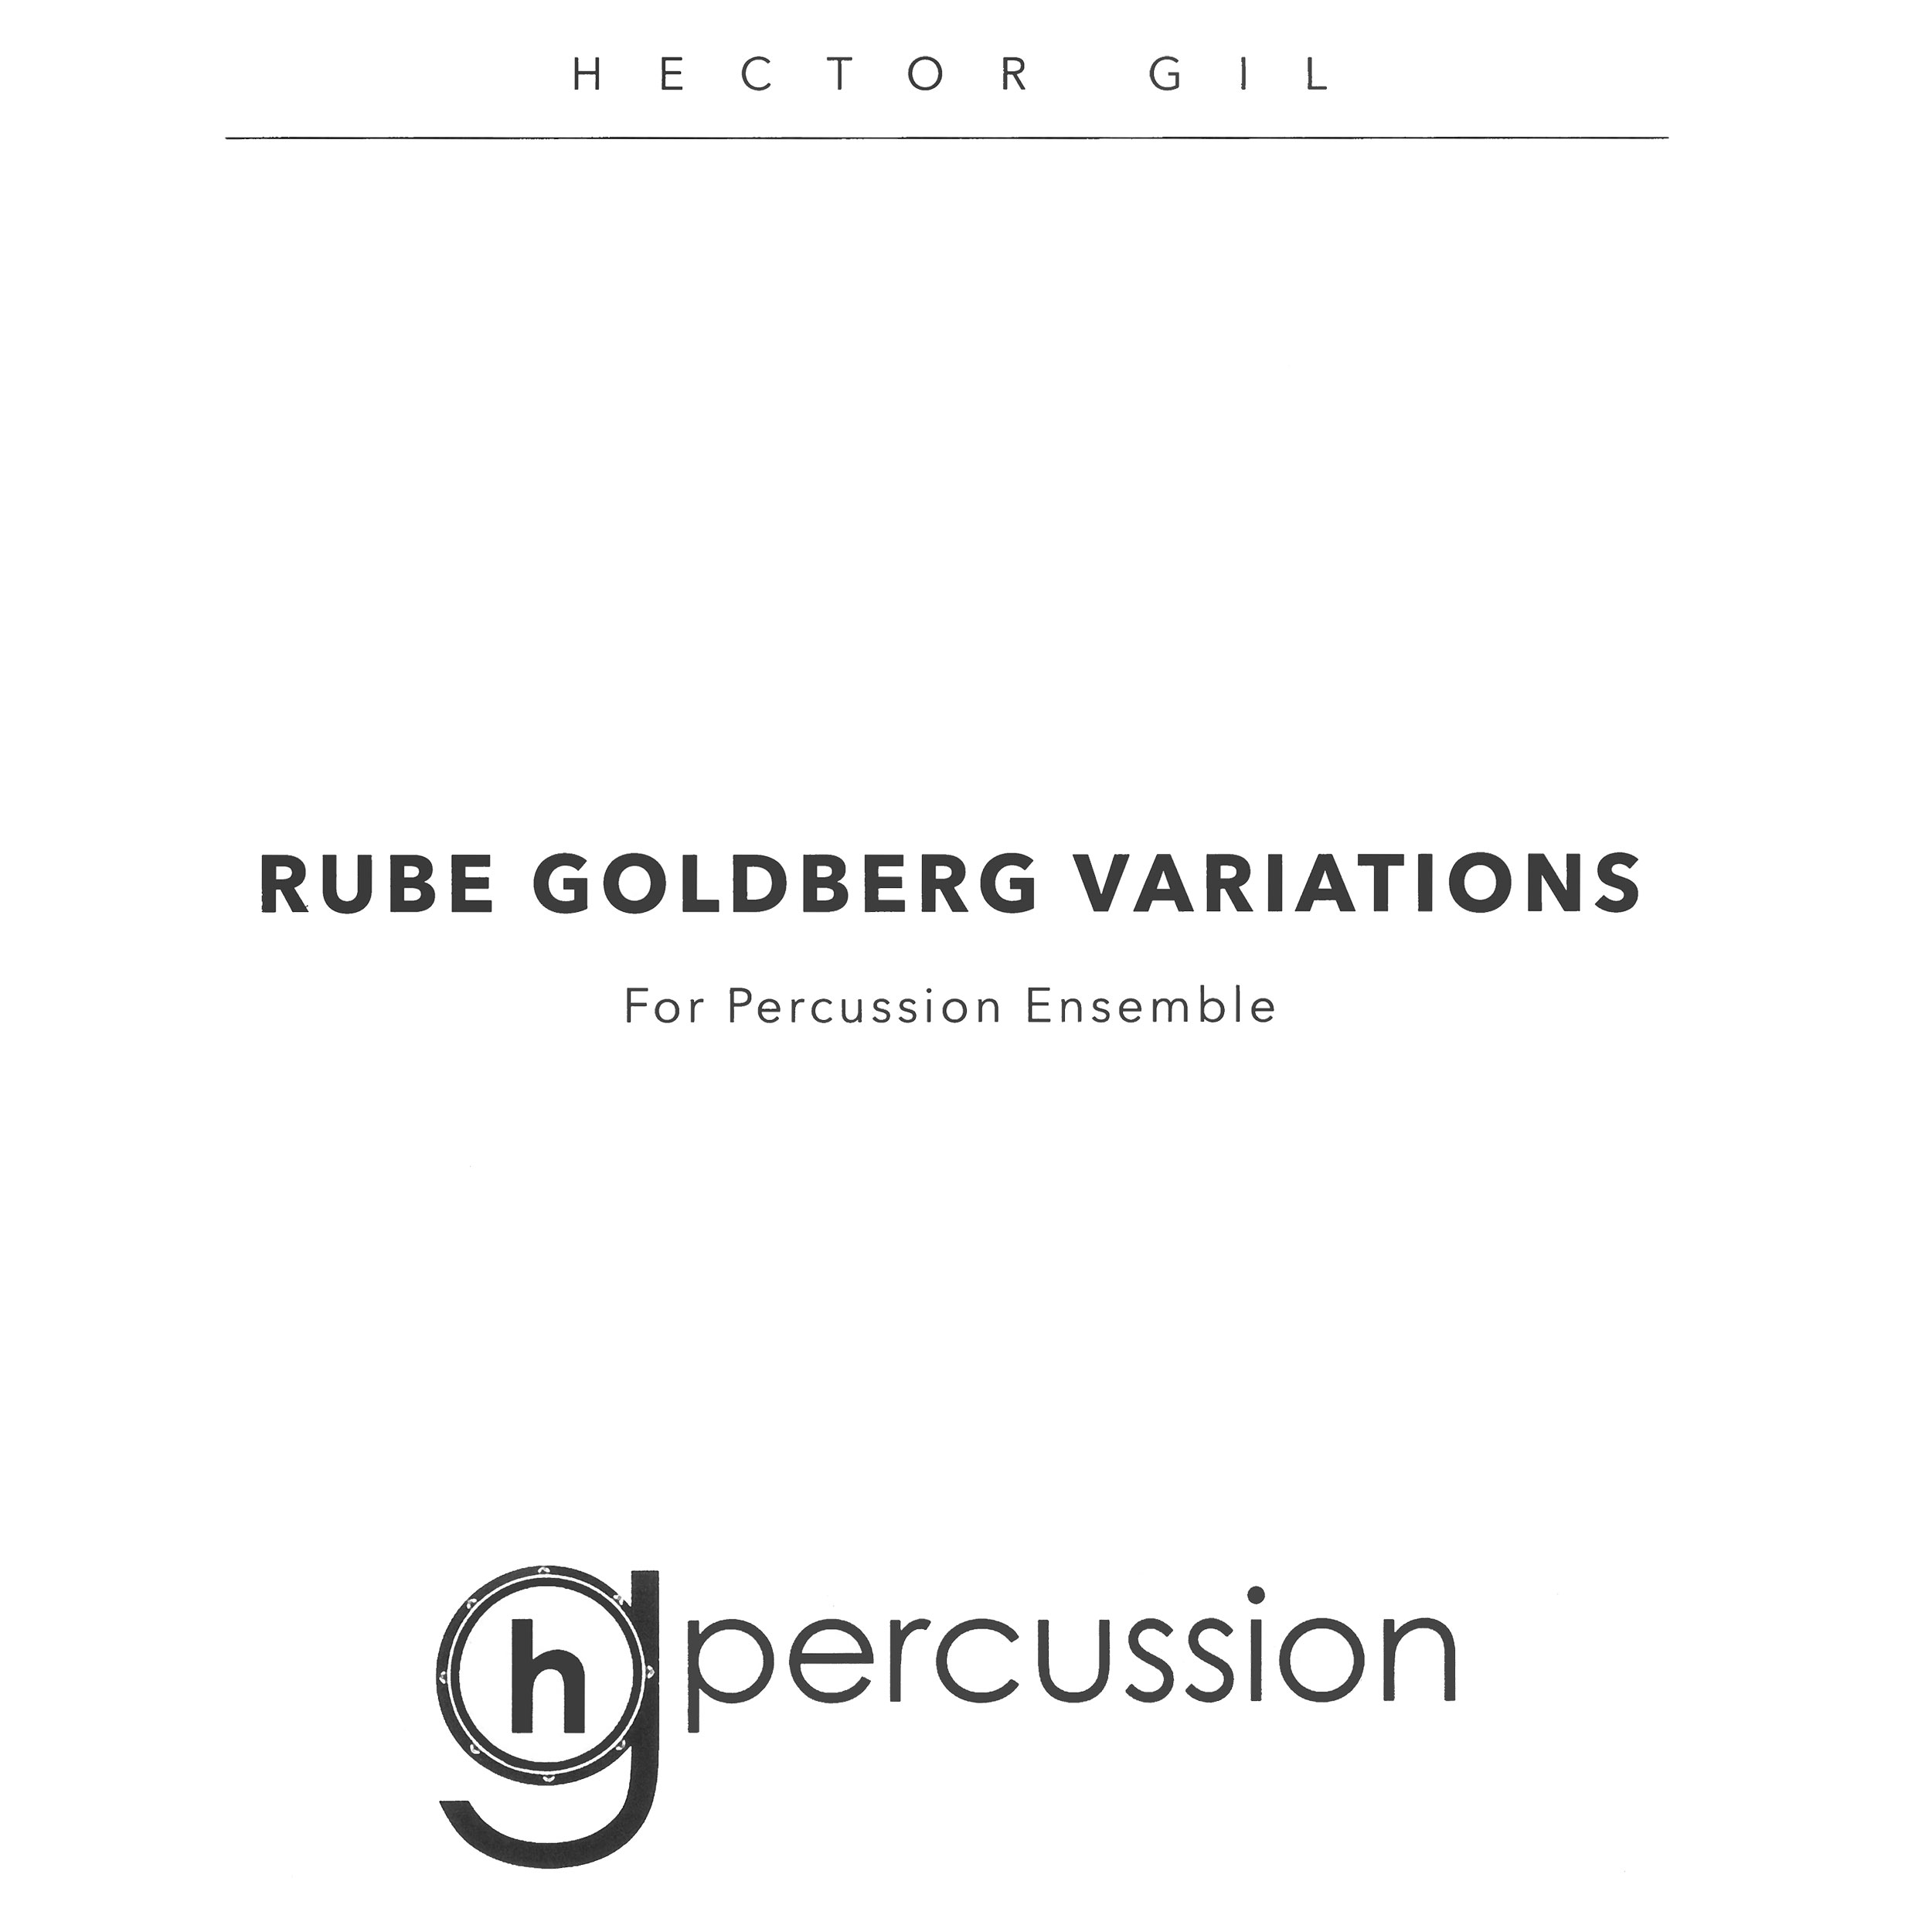 Rube Goldberg Variations by Thank You Scientist arr. Hector Gil